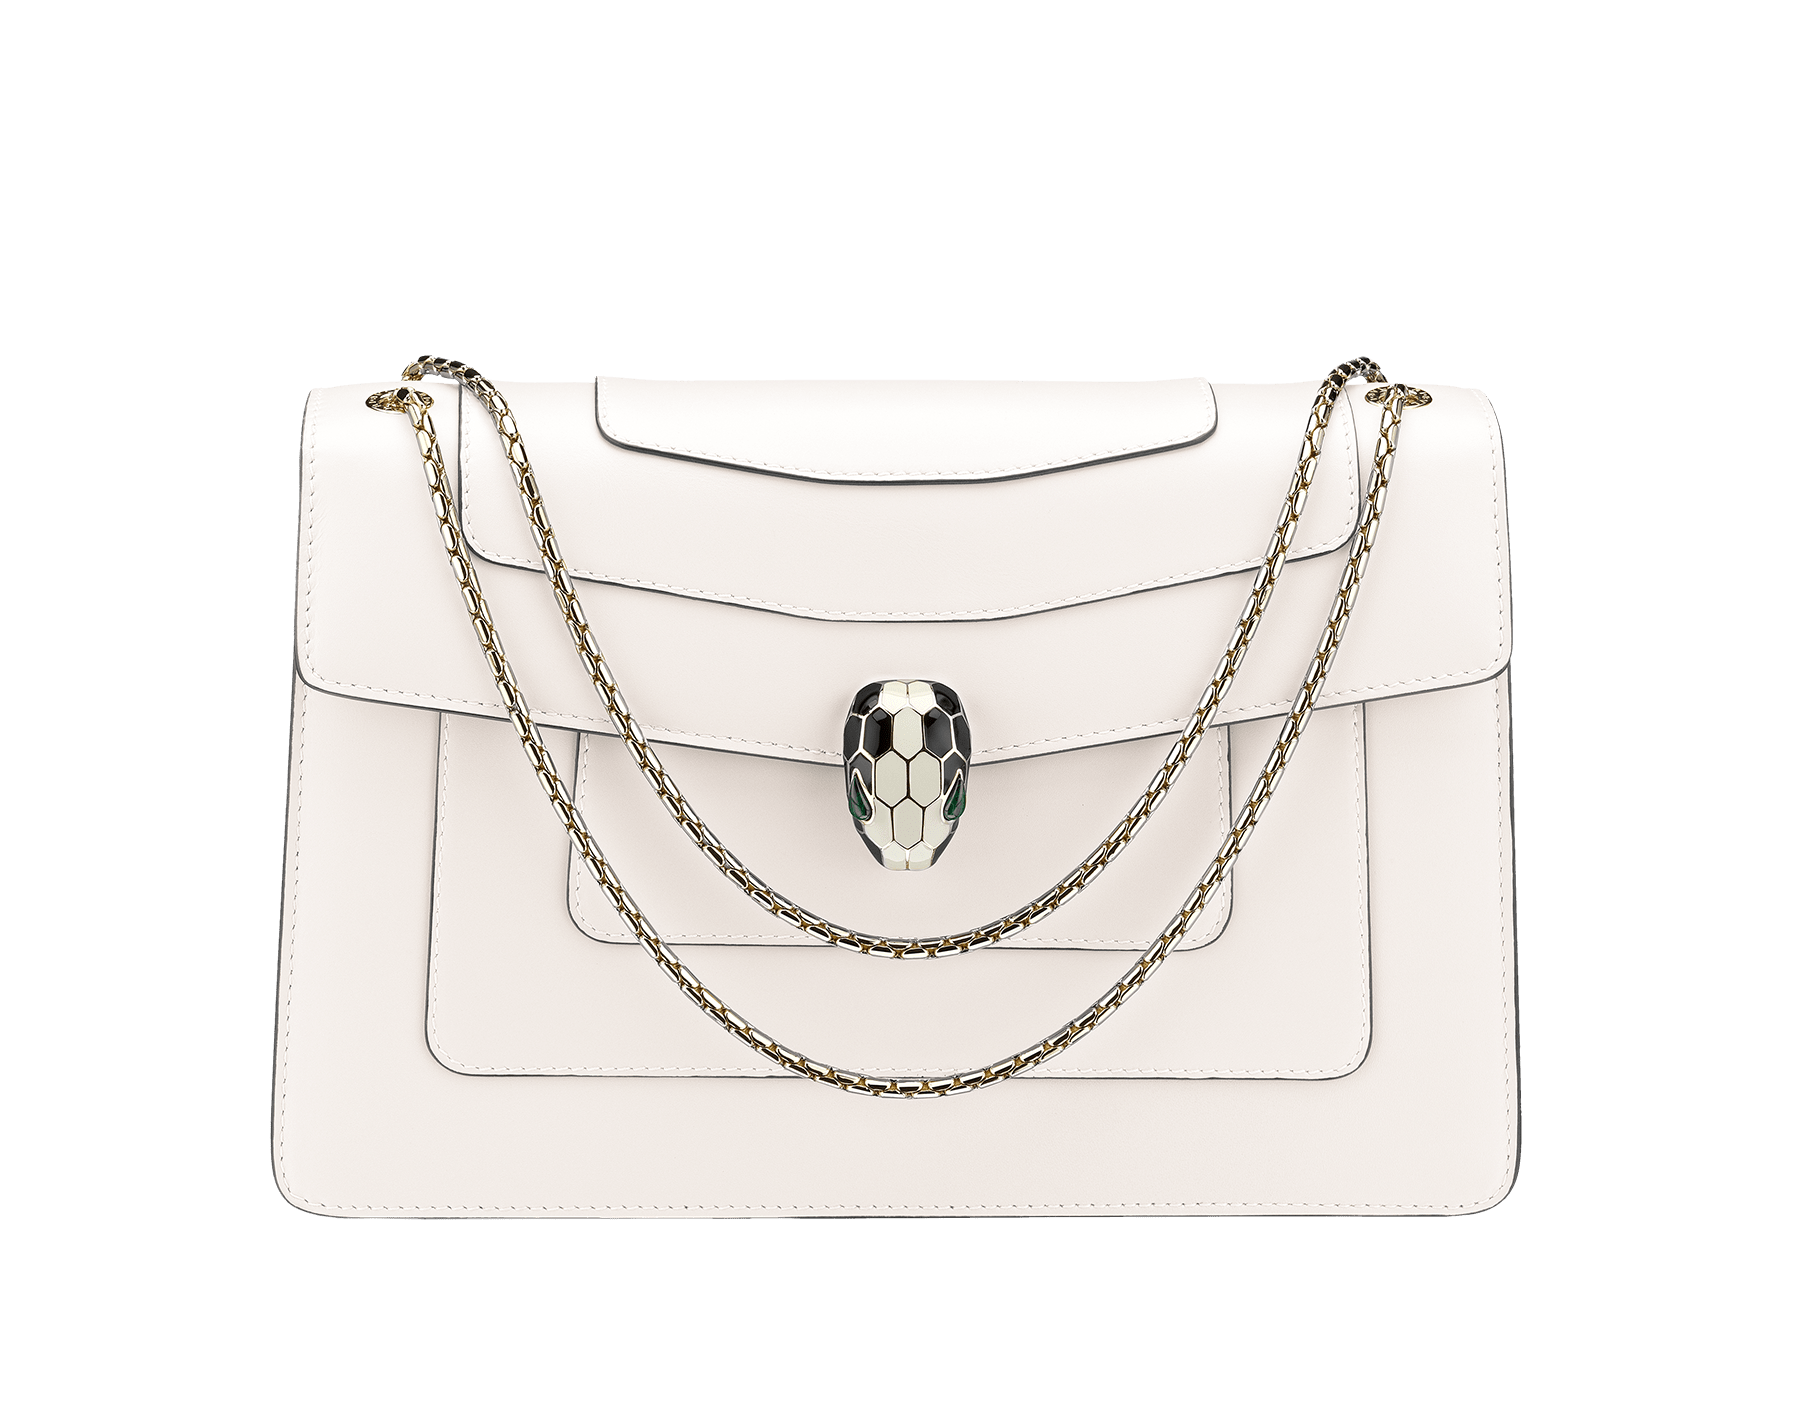 Flap cover bag Serpenti Forever in white agate calf leather. Brass light gold plated snake head closure in black and white enamel with eyes in green malachite. 283170 image 1